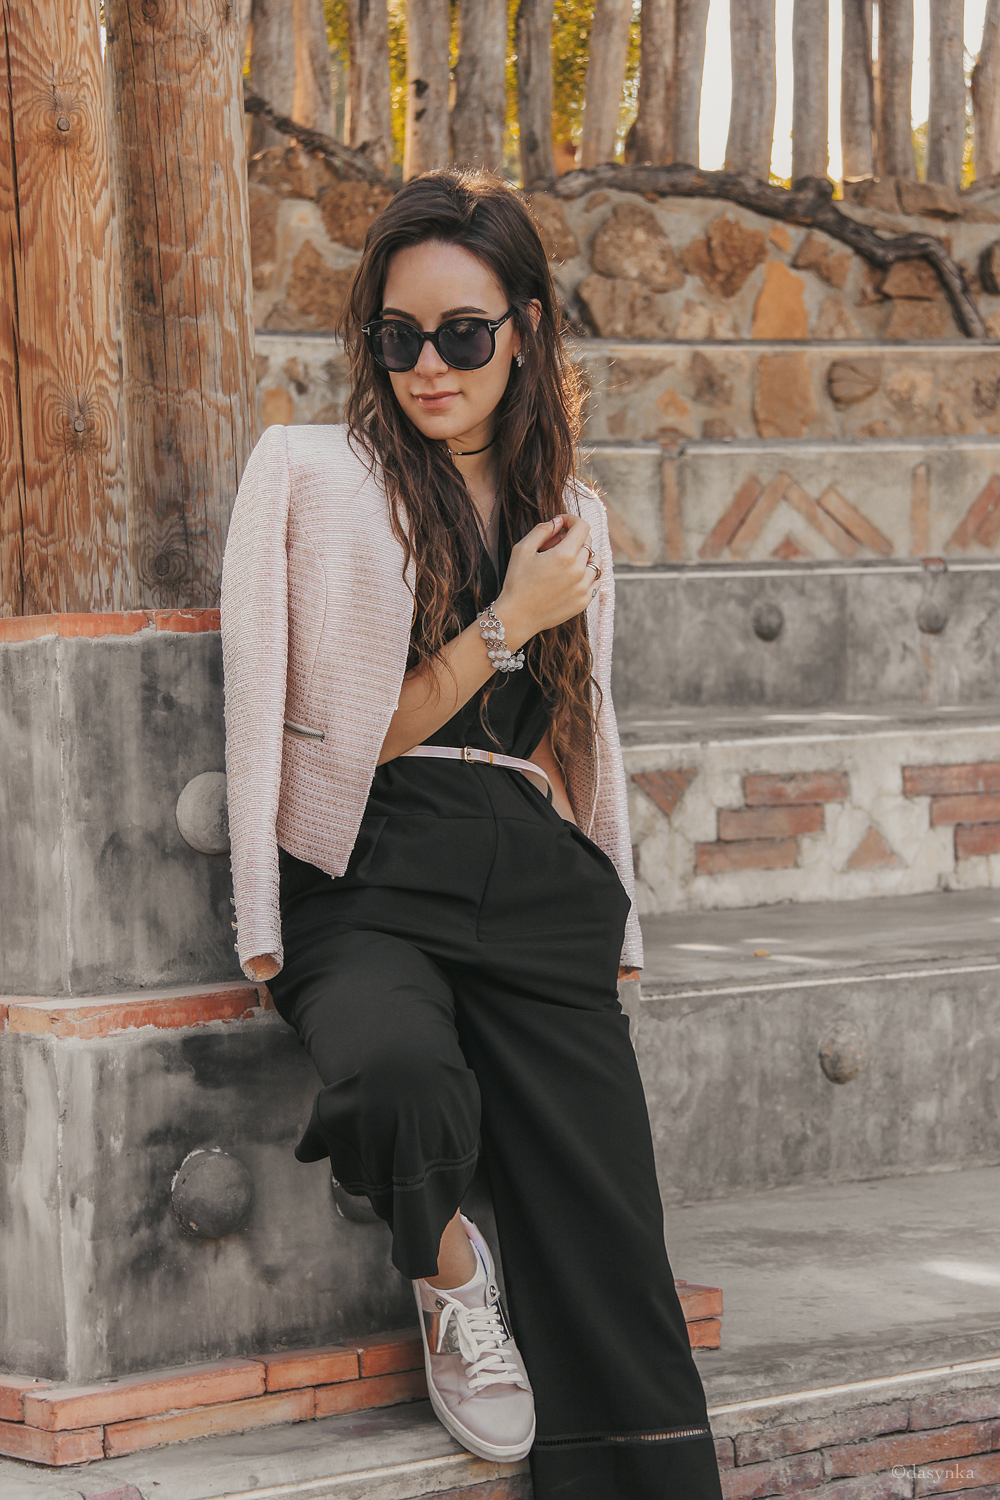 dasynka-fashion-blog-blogger-influencer-inspiration-shooting-model-globettrotter-travel-girl-lookbook-instagram-long-hair-street-style-casual-italy-lifestyle-outfit-poses-valencia-jacket-pink-jumpsuit-black-bioparc-backpack-forever-21-hm-sneakers-valentino-look-inspo